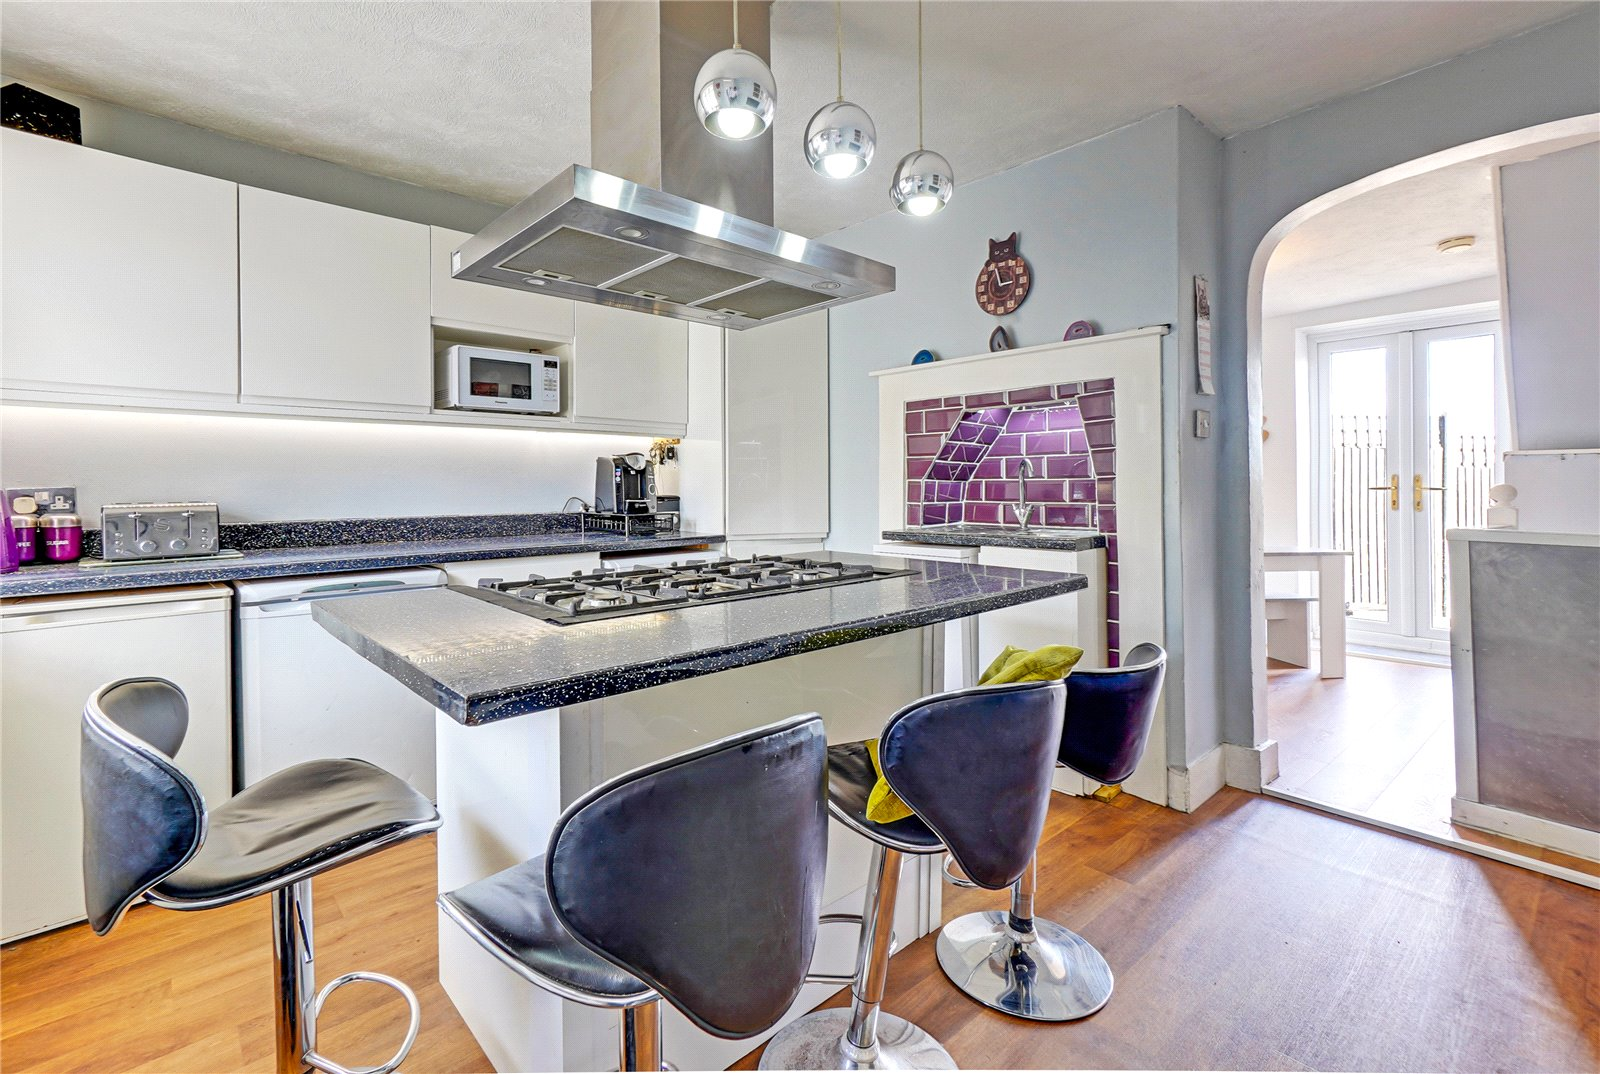 3 bed house for sale in Hartnup Street, Maidstone, ME16